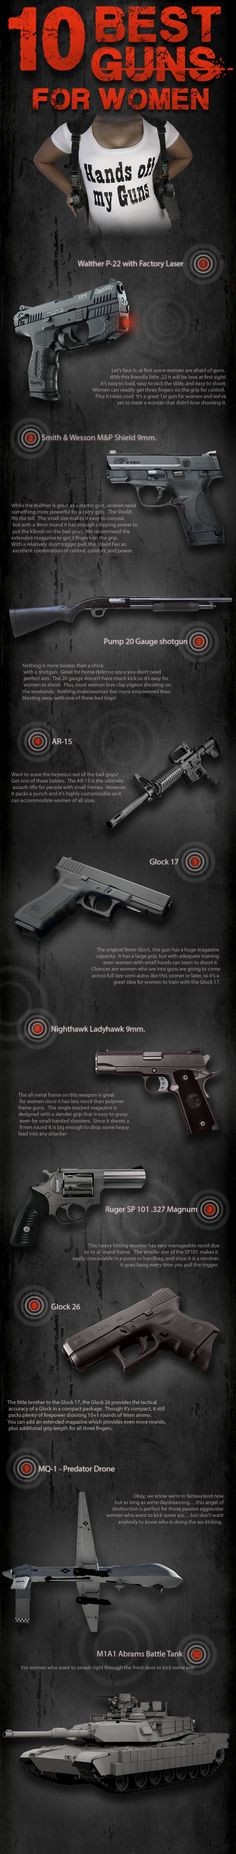 The 10 Best Guns for Women. Love it